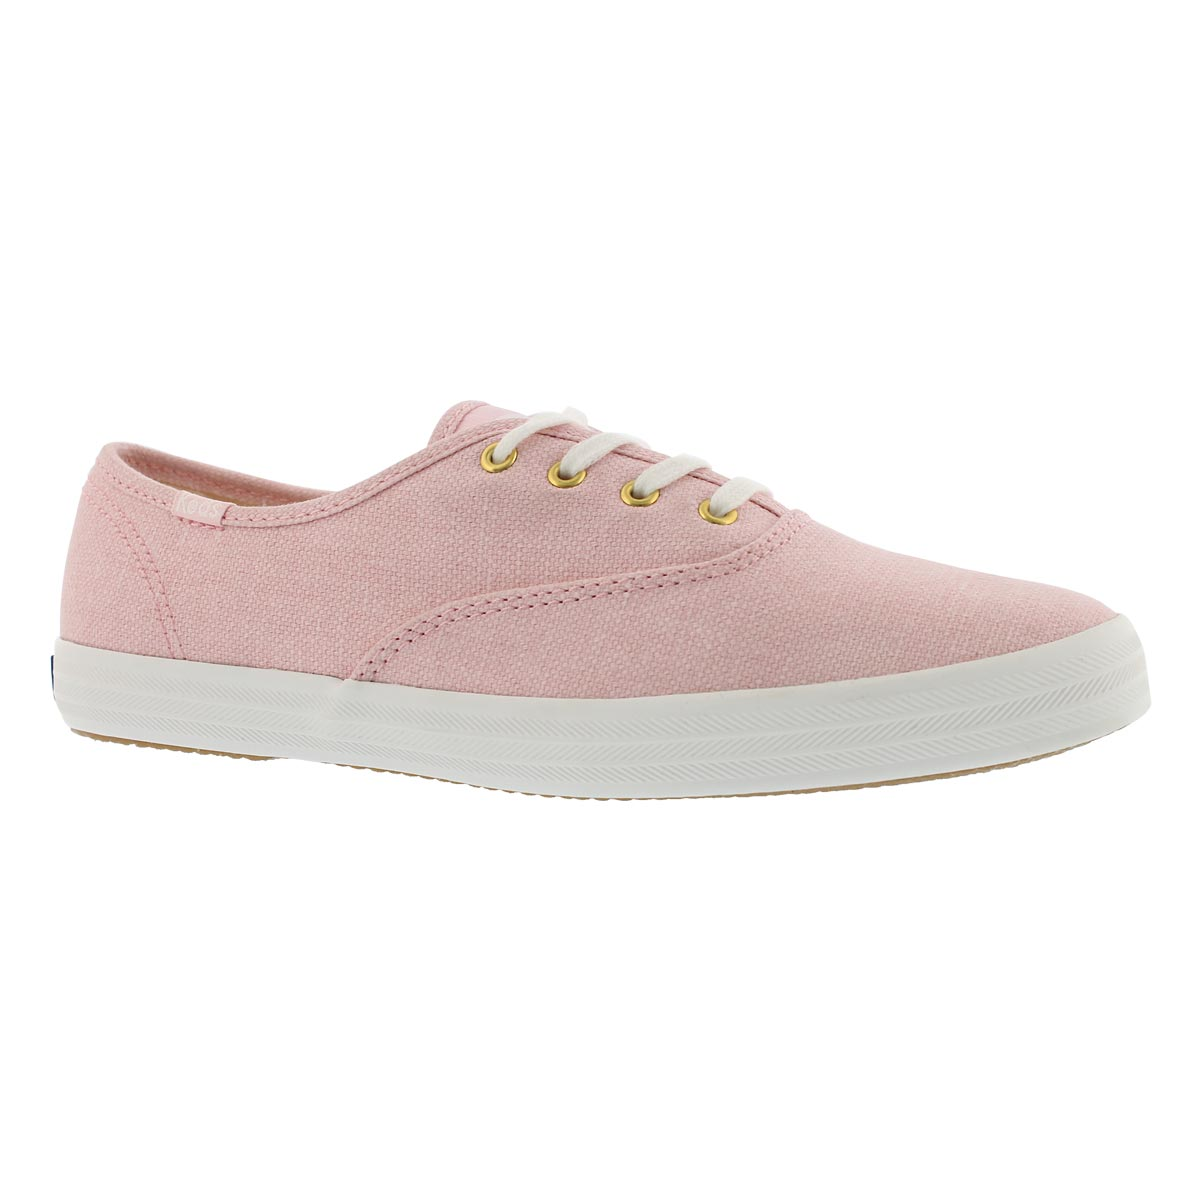 Women's CHAMPION CHALKY rose pink sneaker